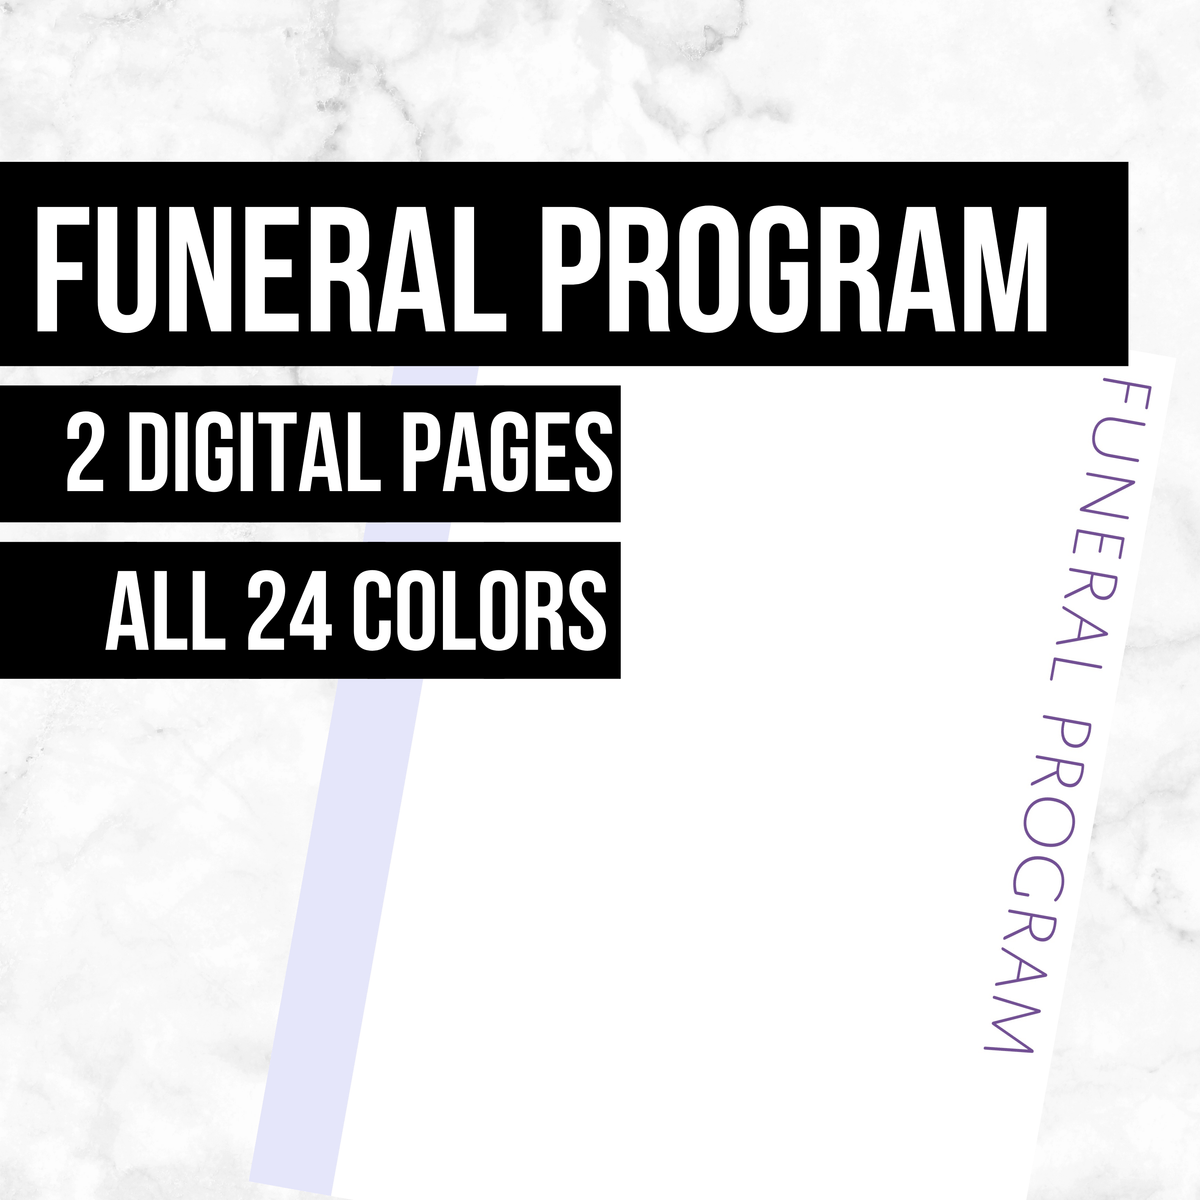 Funeral Program: Printable Genealogy Forms (Digital Download)